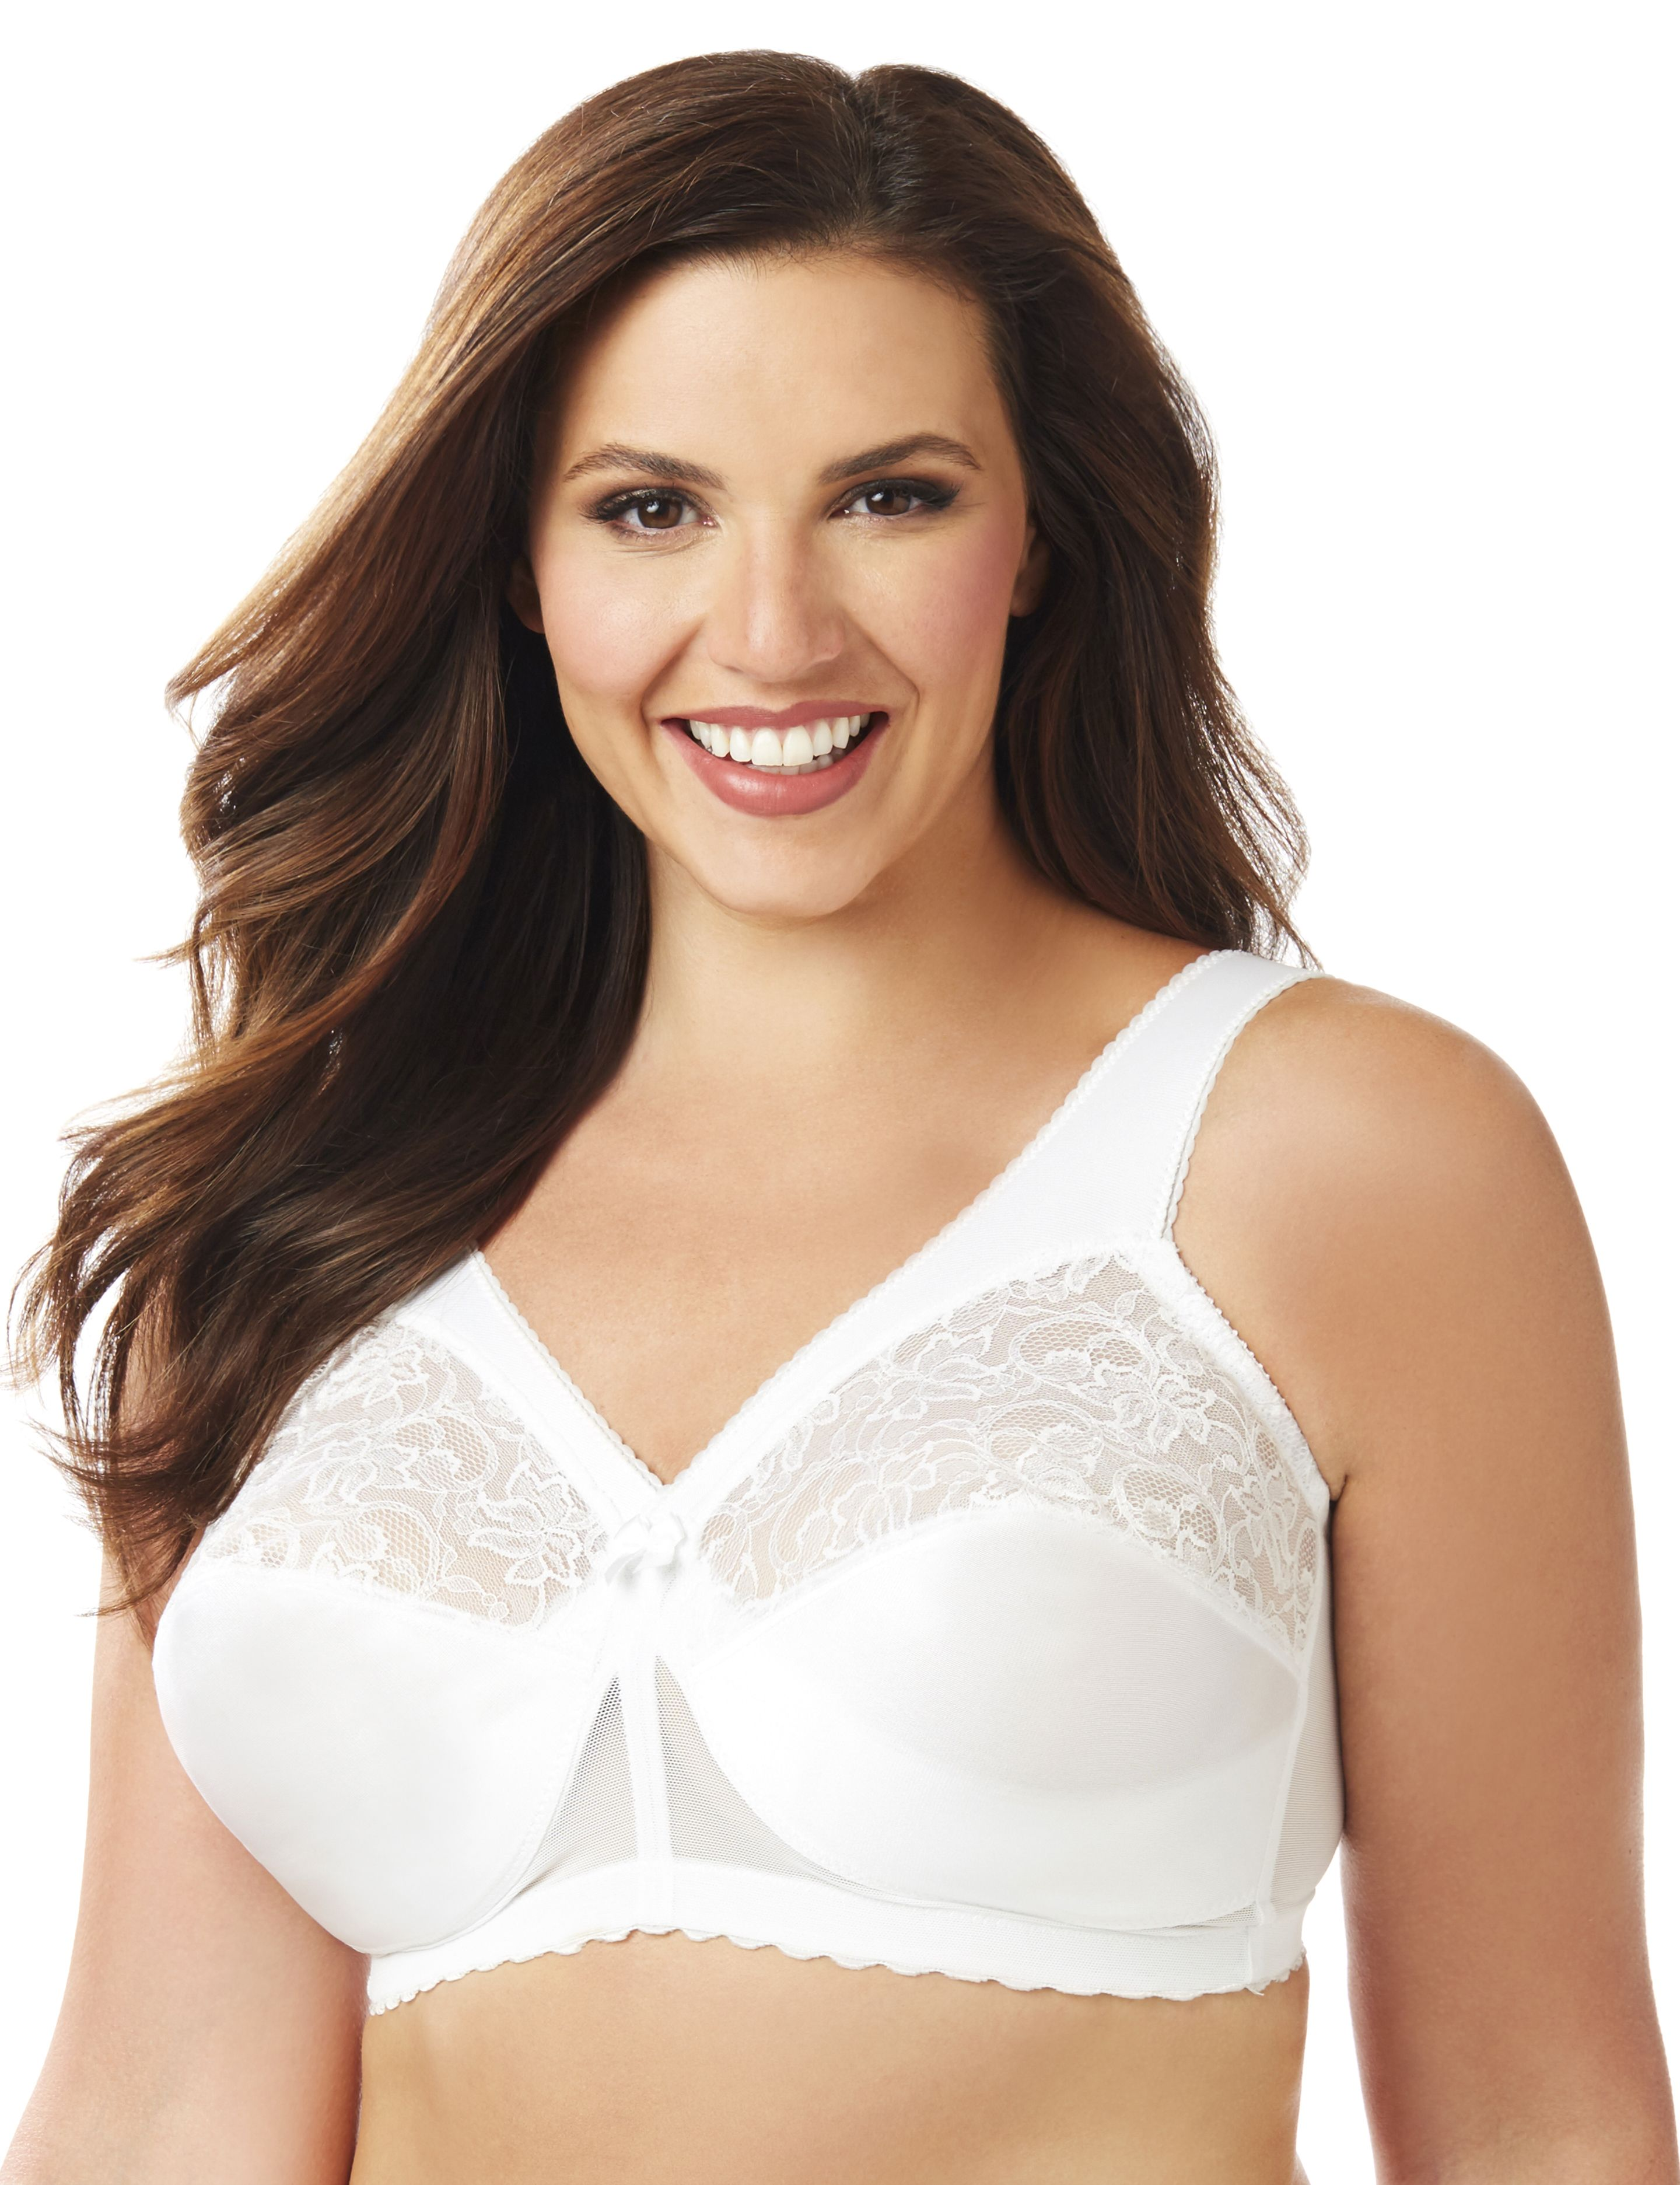 Glamorise 1000 Magic Lift No-Wire Bra Glamorise 1000 Magic Lift No-Wire Bra MP-000156869